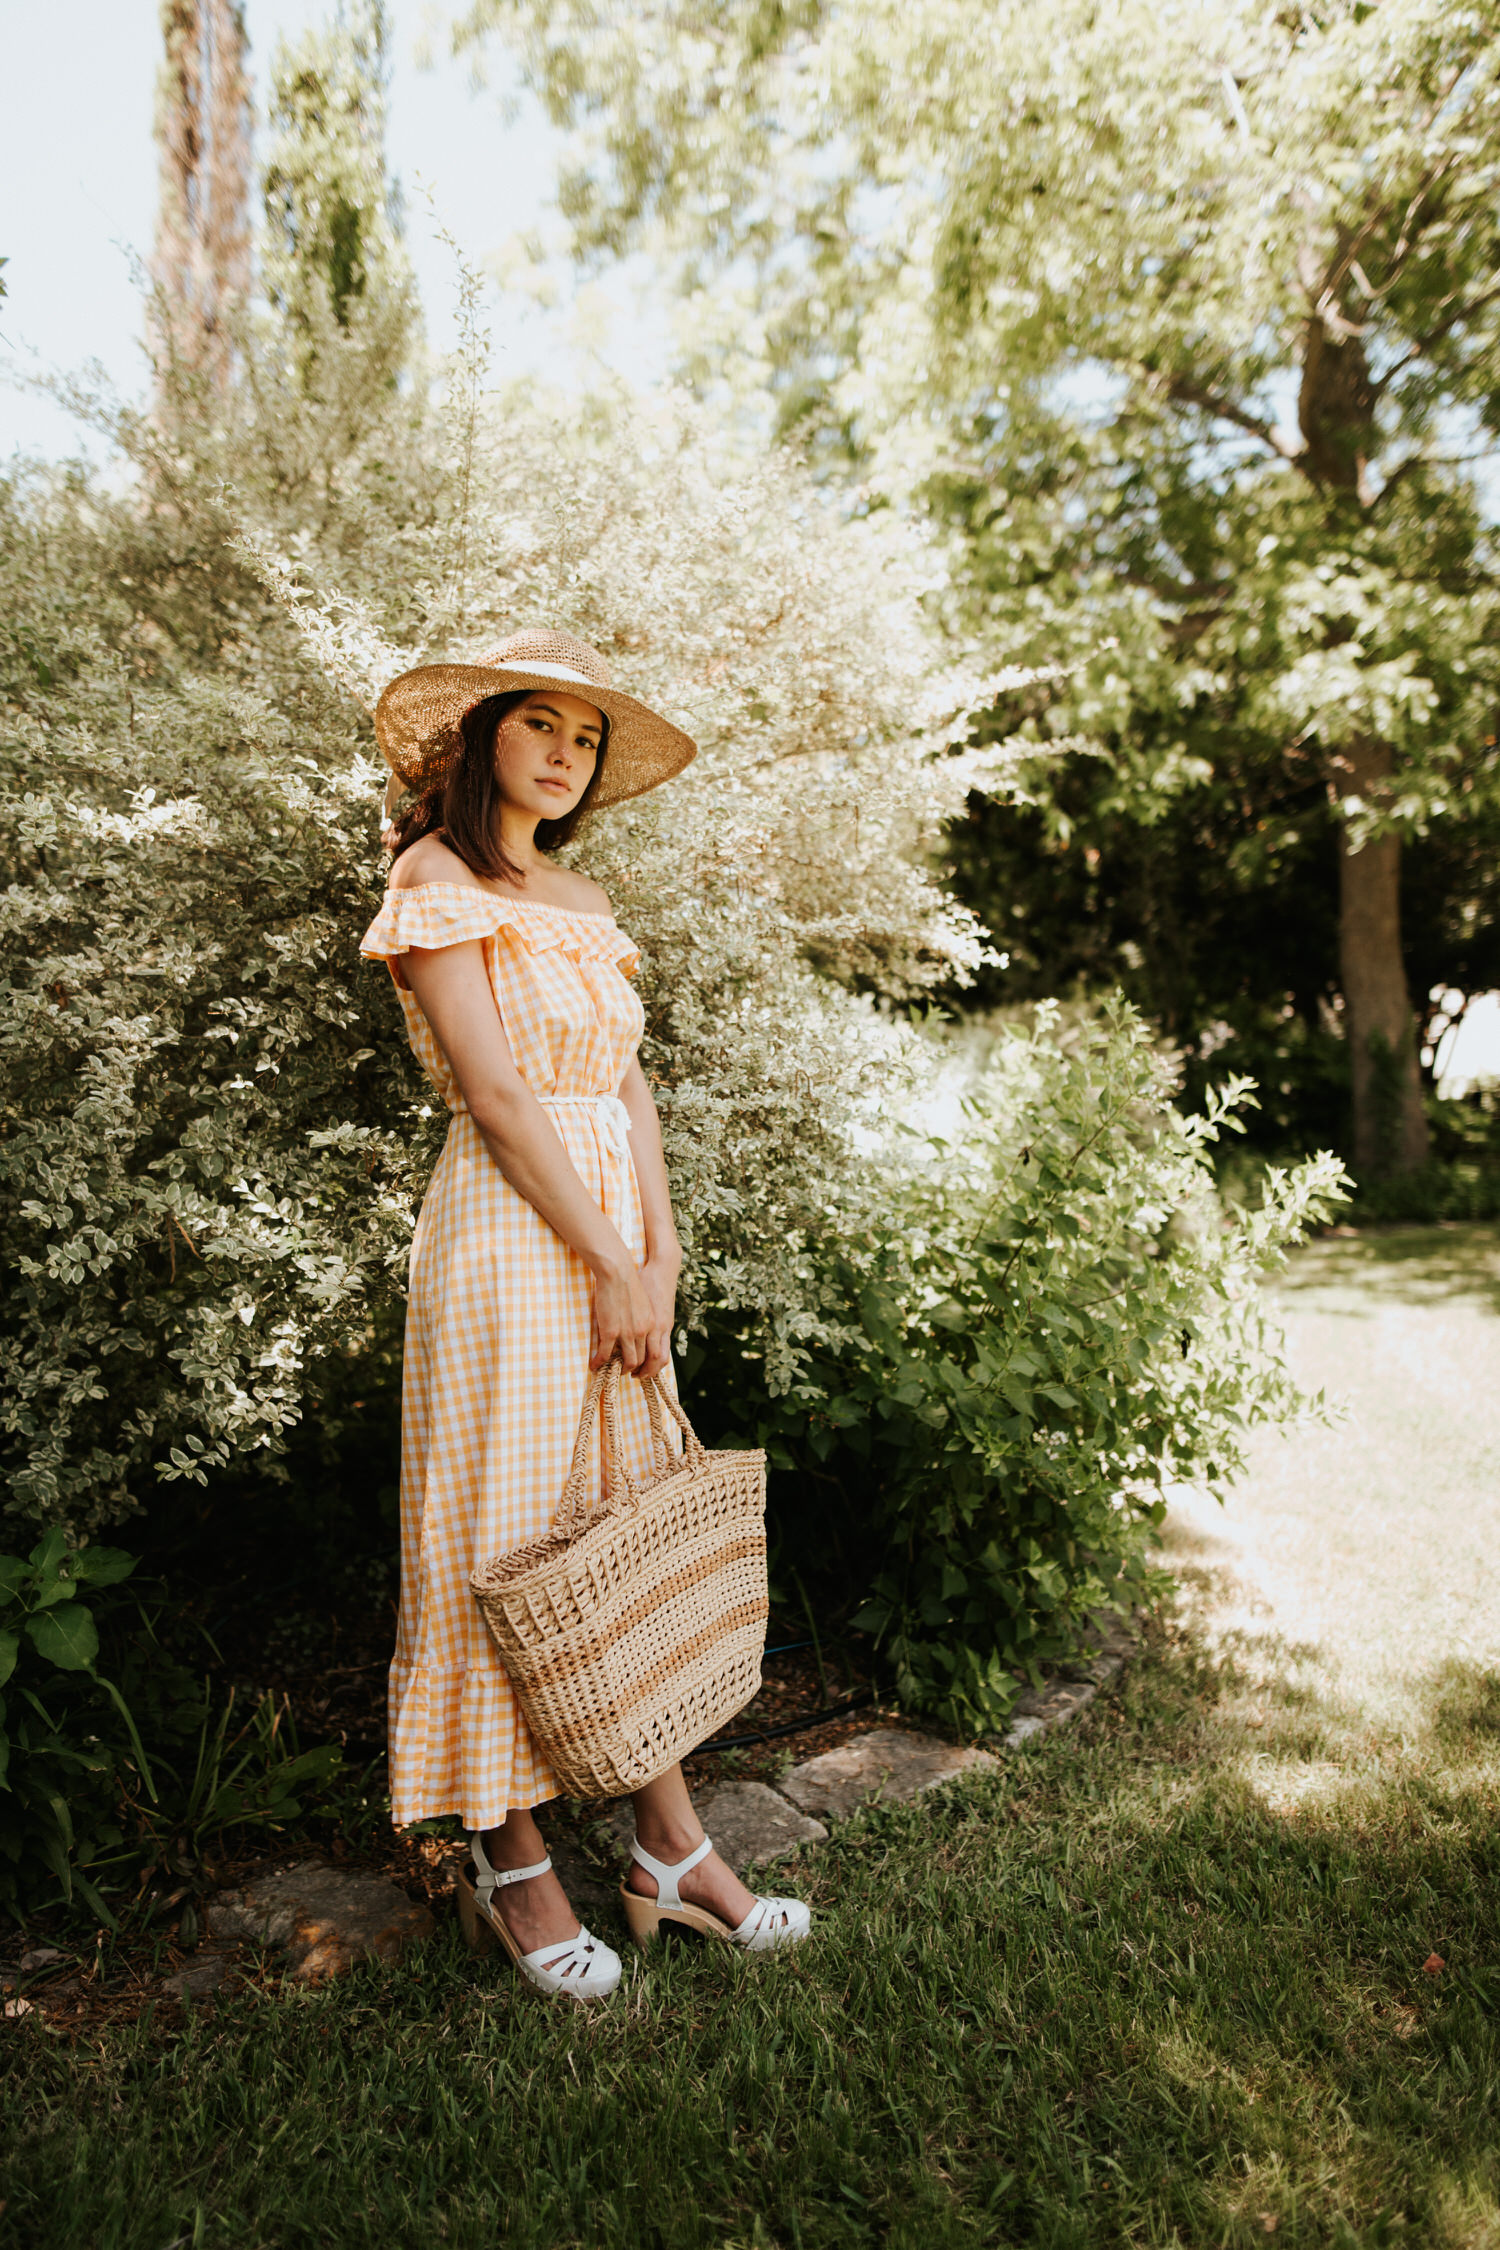 Woman in yellow gingham vintage dress